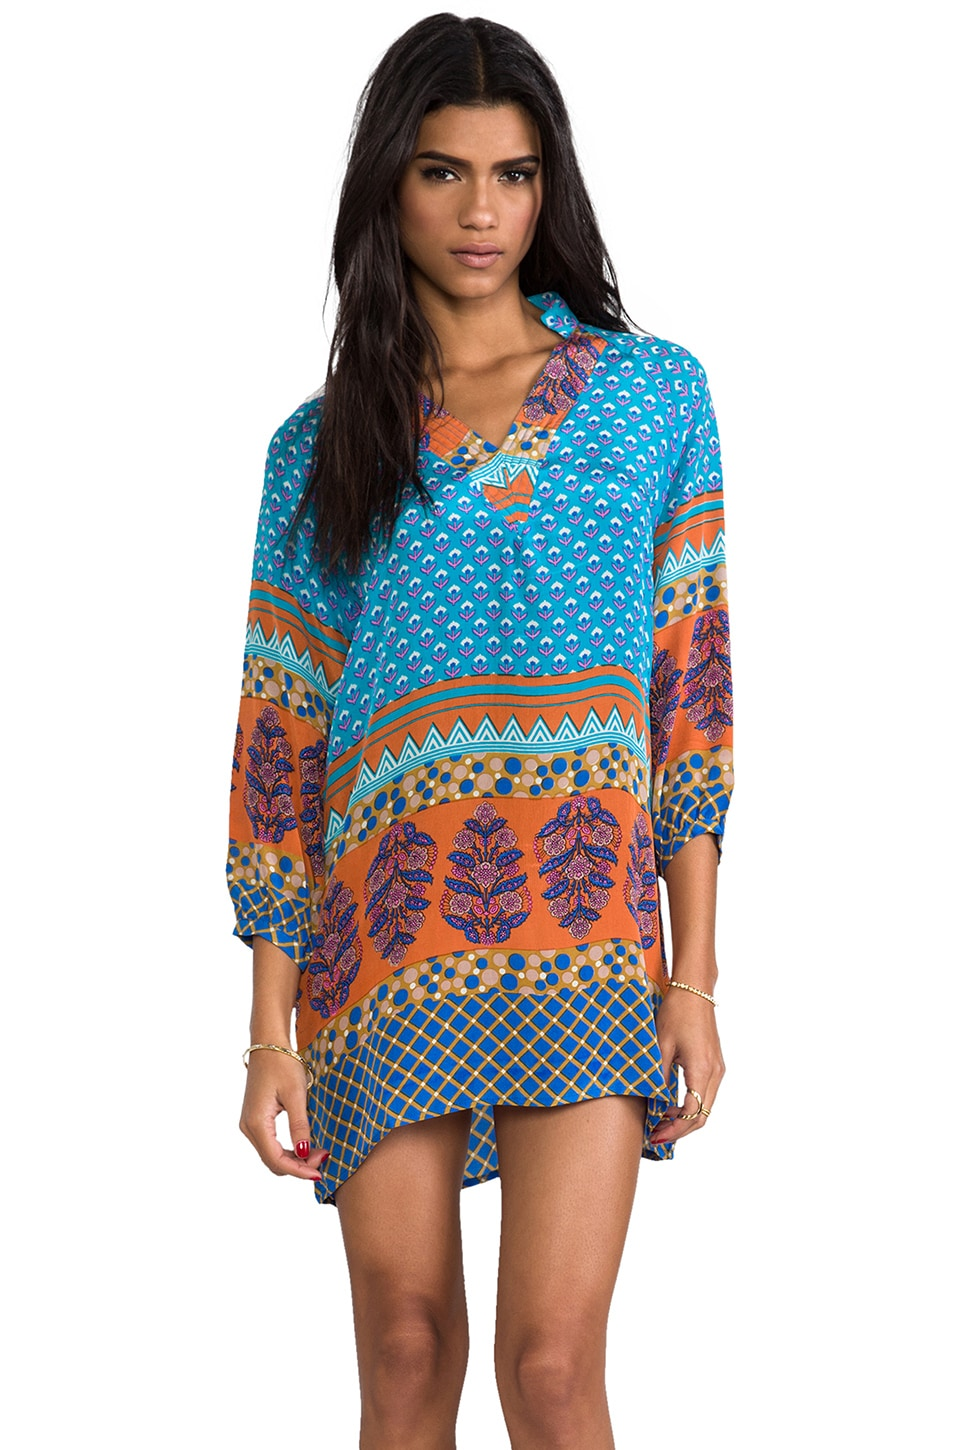 Tolani Chandra Dress in Turquoise/Orange